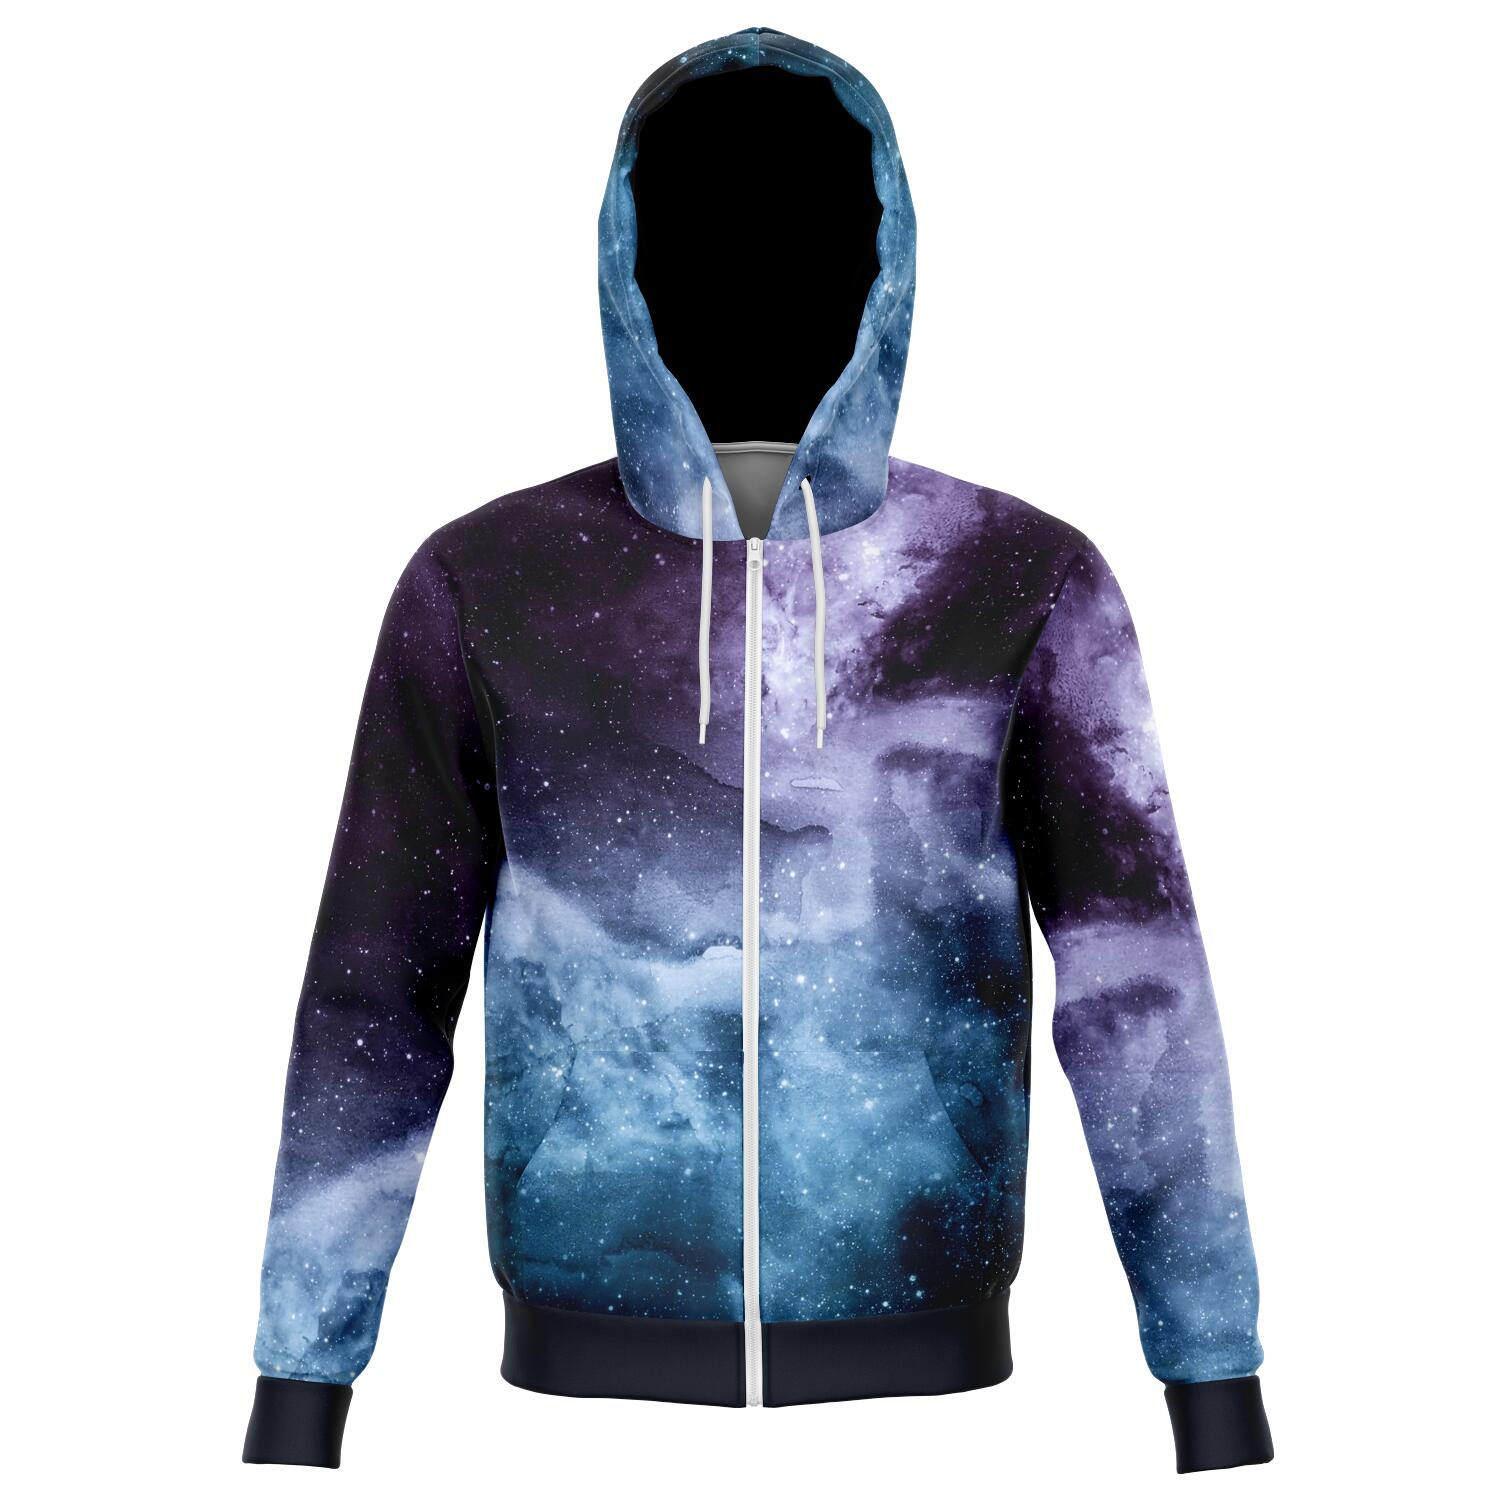 Stardust all over print zip up hoodie unisex - front image